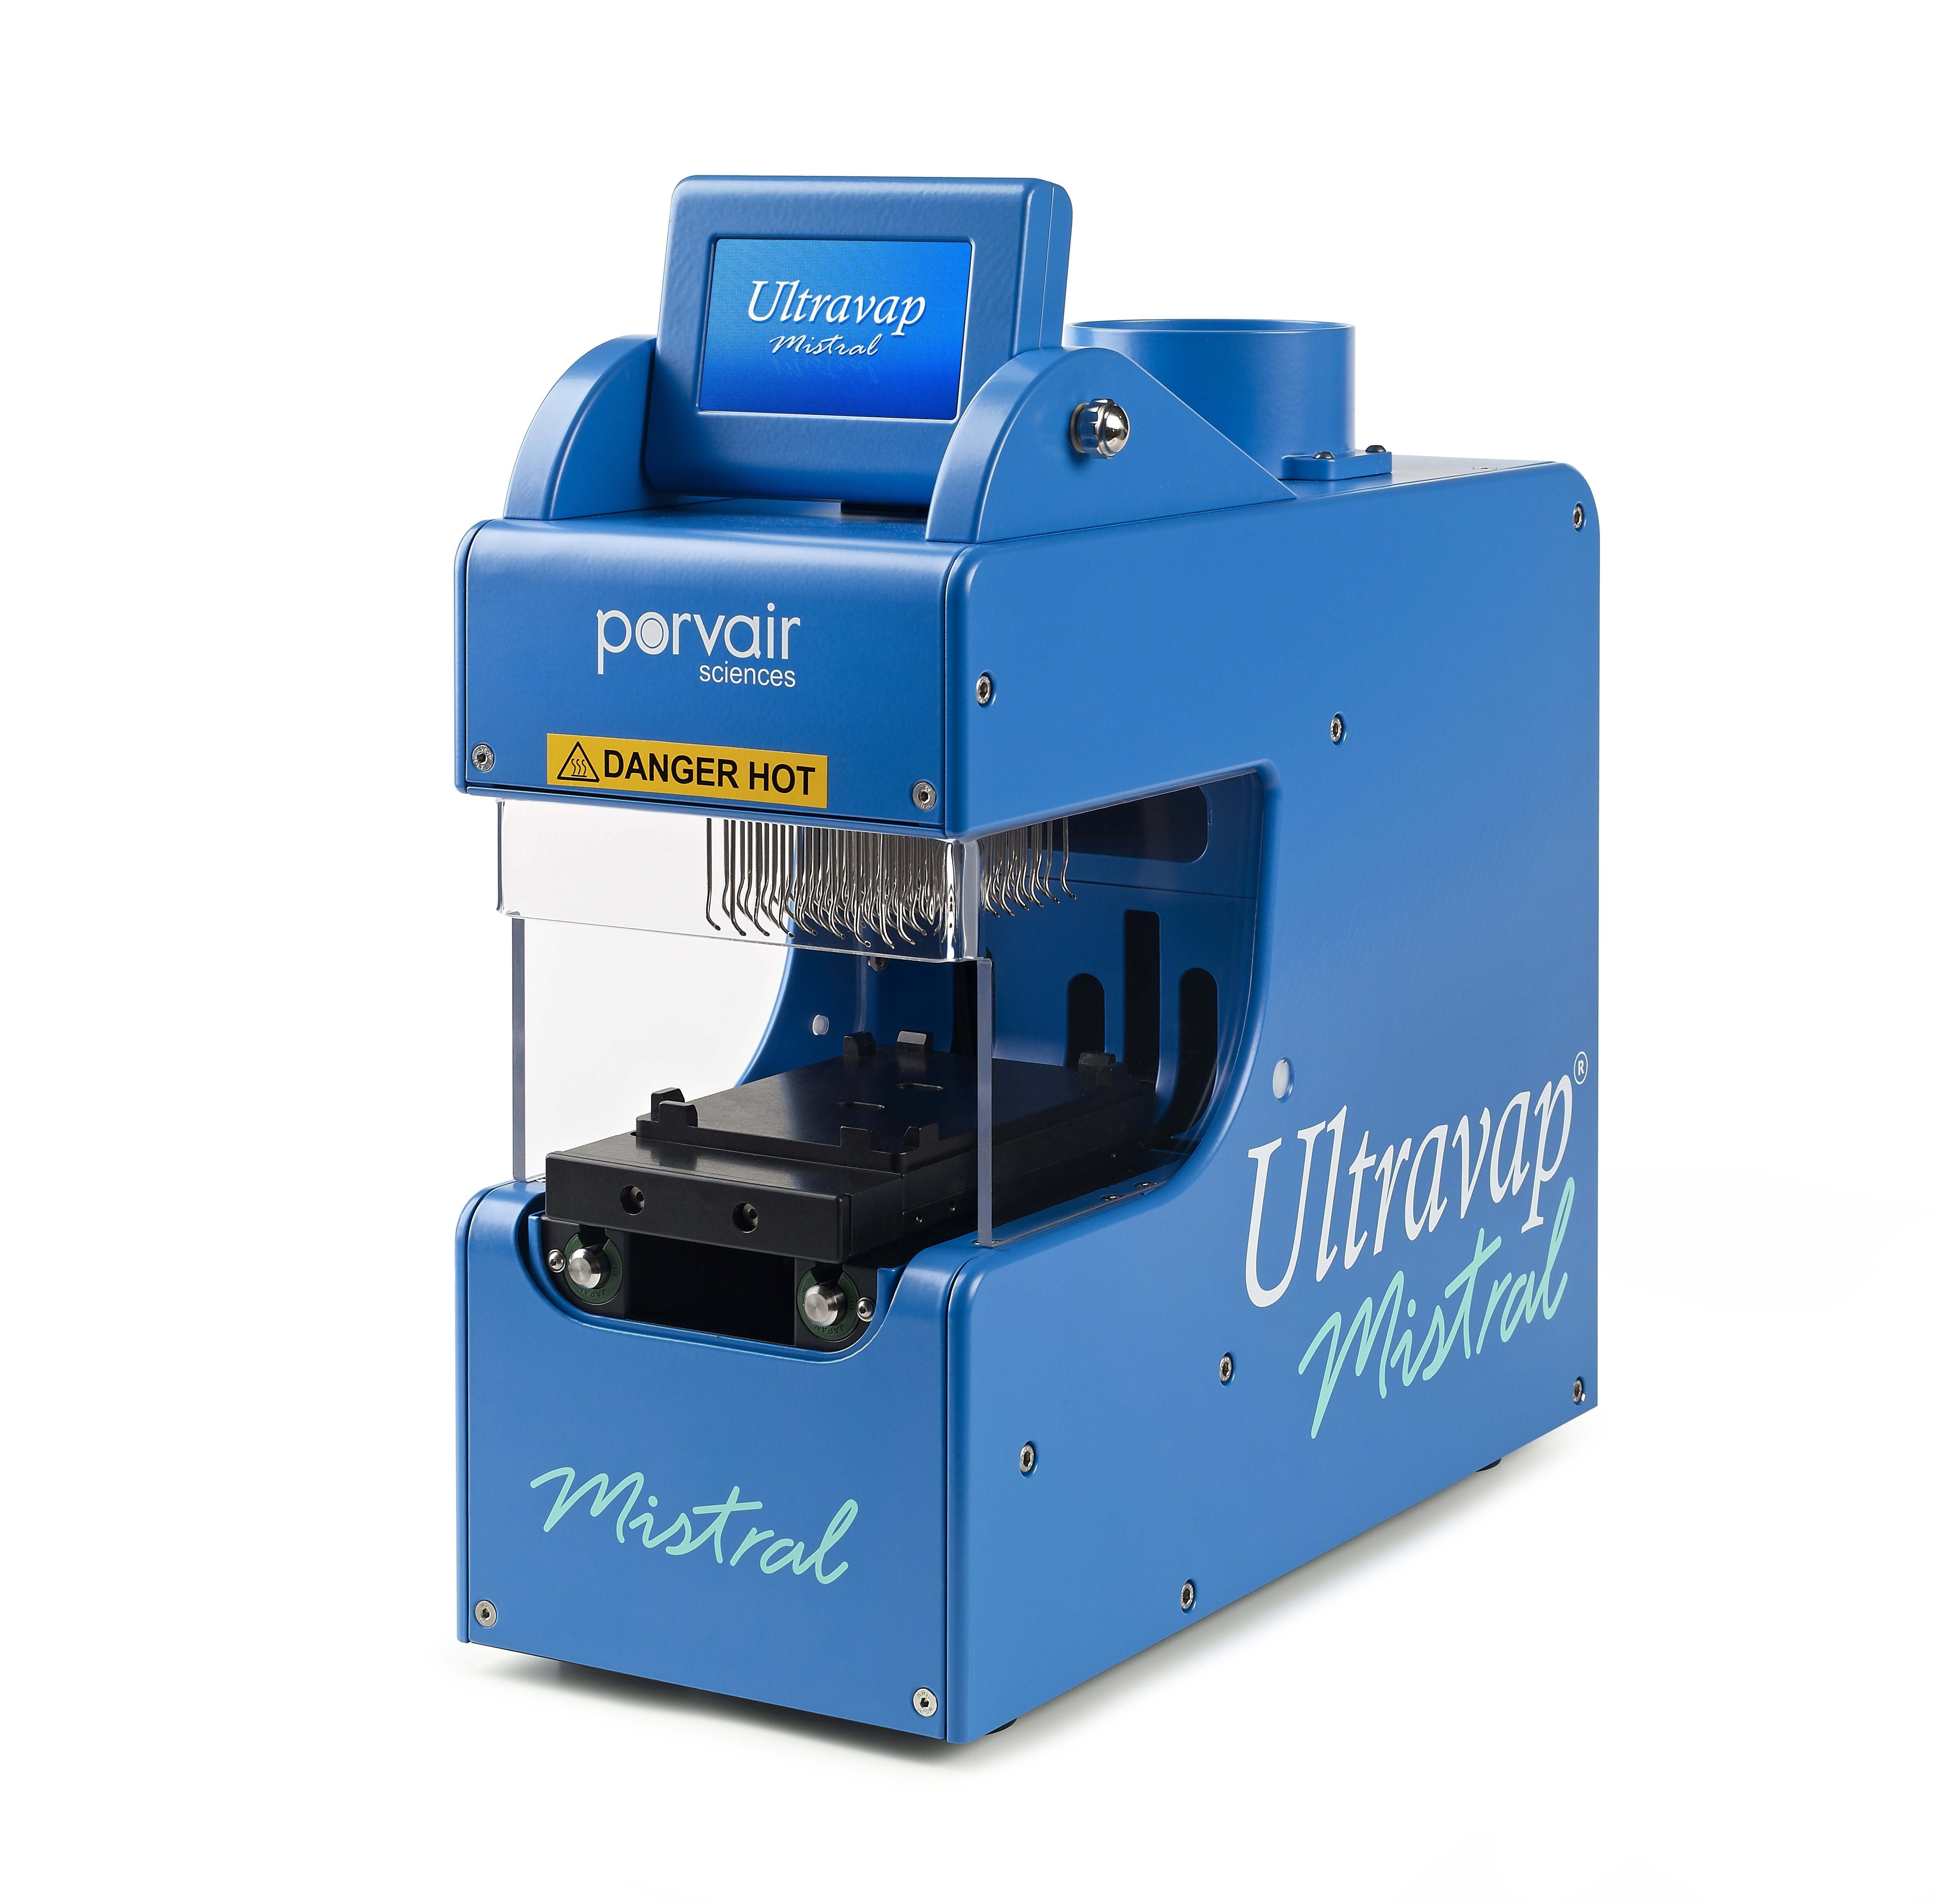 Ultravap Mistral fully robot compatible Blowdown Evaporator Without needle head, 110/230V